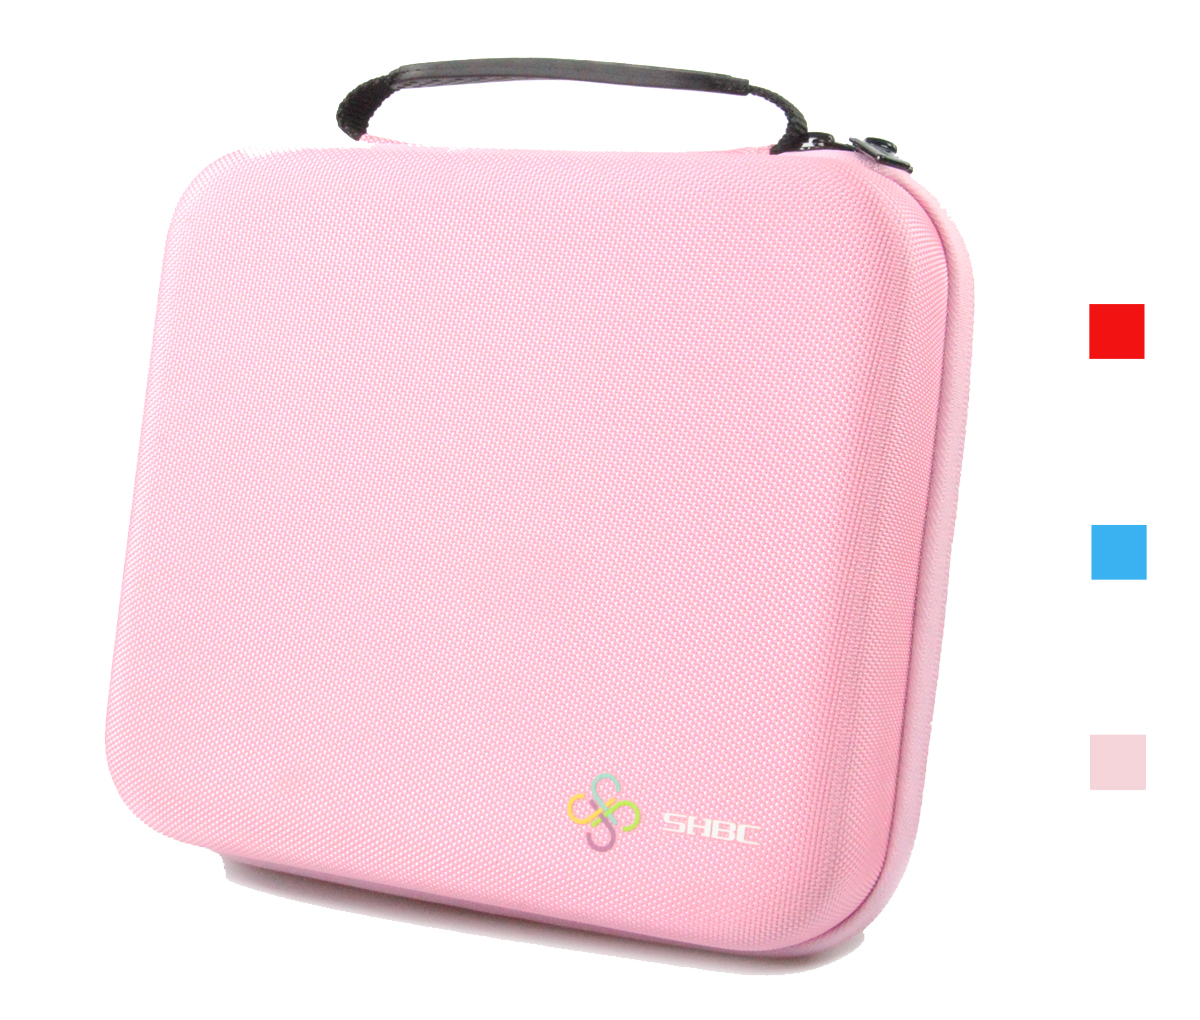 Stylish Essential Oil Carrying Case – Securely Holds 30 Bottles Featured Image